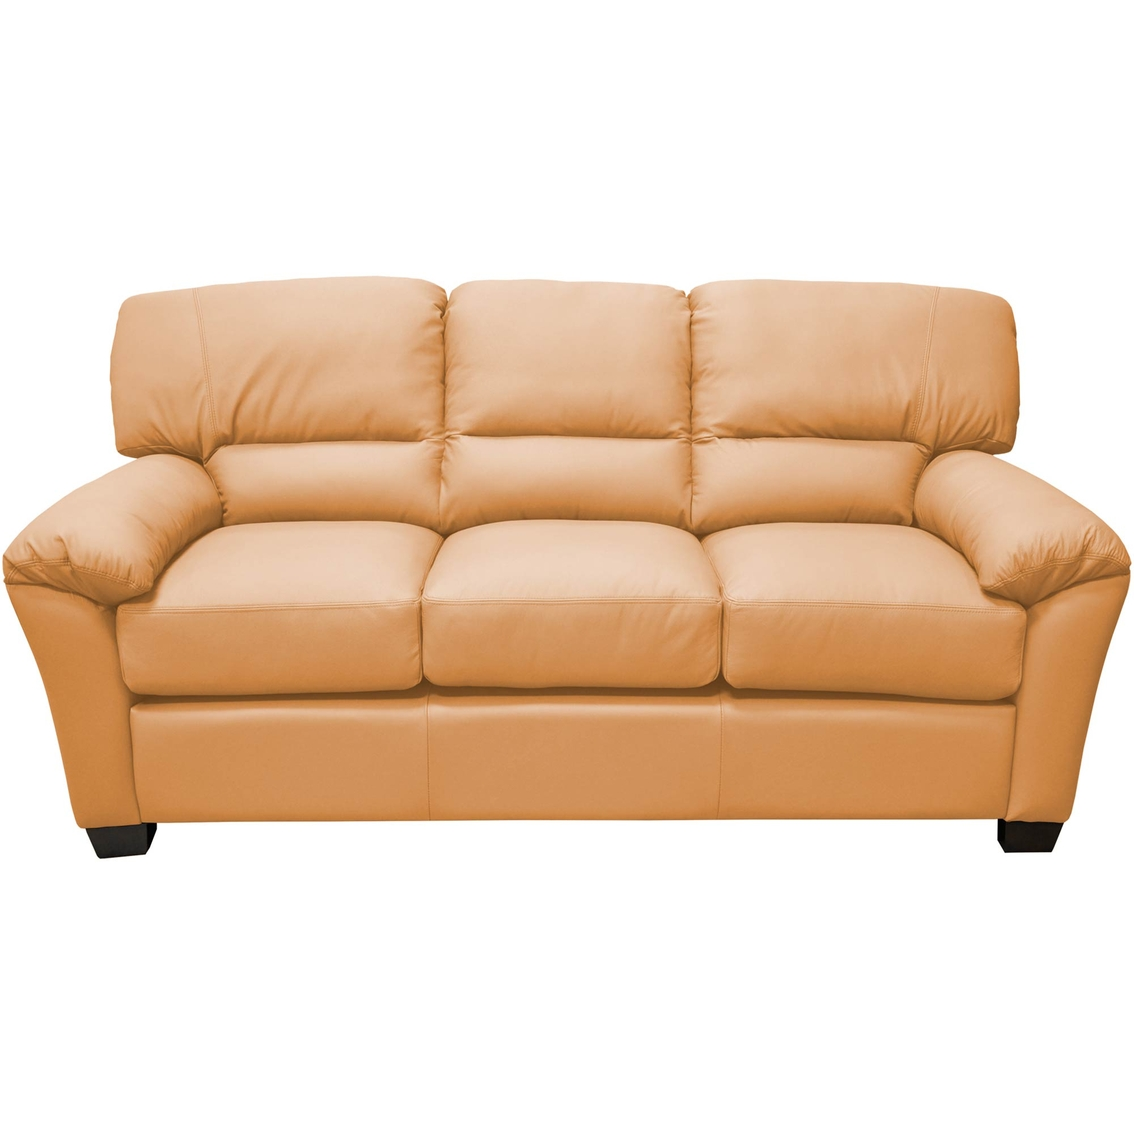 omnia sofa prices reupholstery cost edinburgh leather cedar heights sofas and couches home